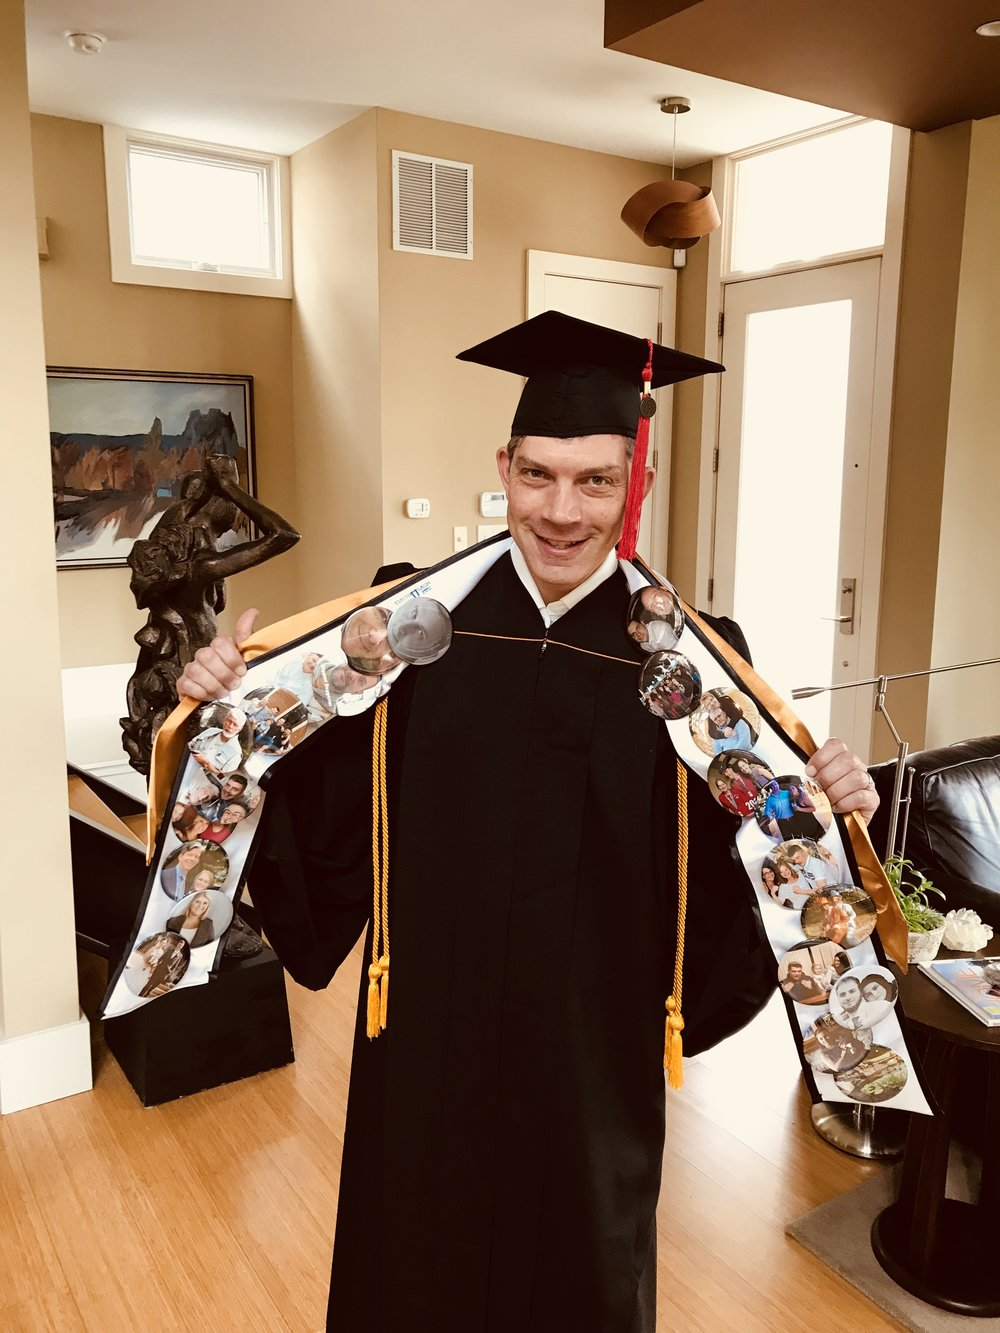 Buttons adorned his sash for each family member that could not attend his graduation ceremony.